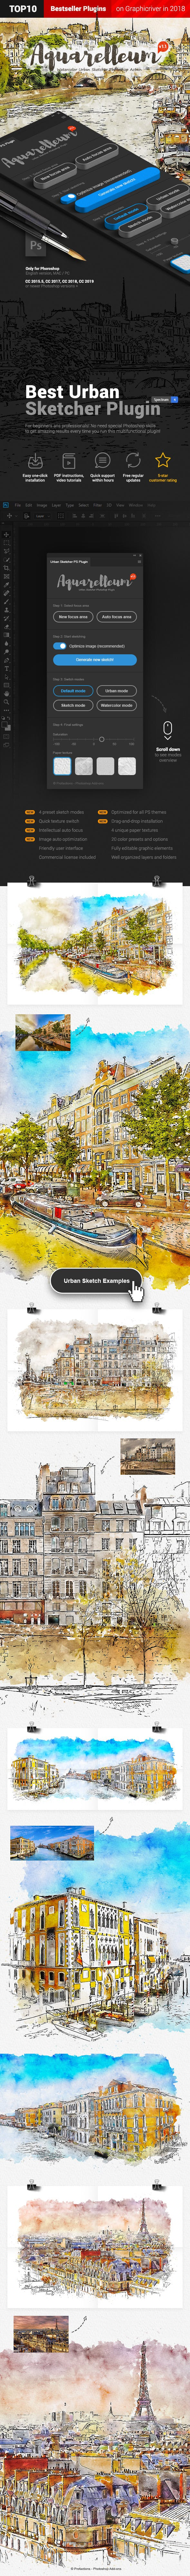 Aquarelleum - Urban Sketcher Photoshop Plugin - 1